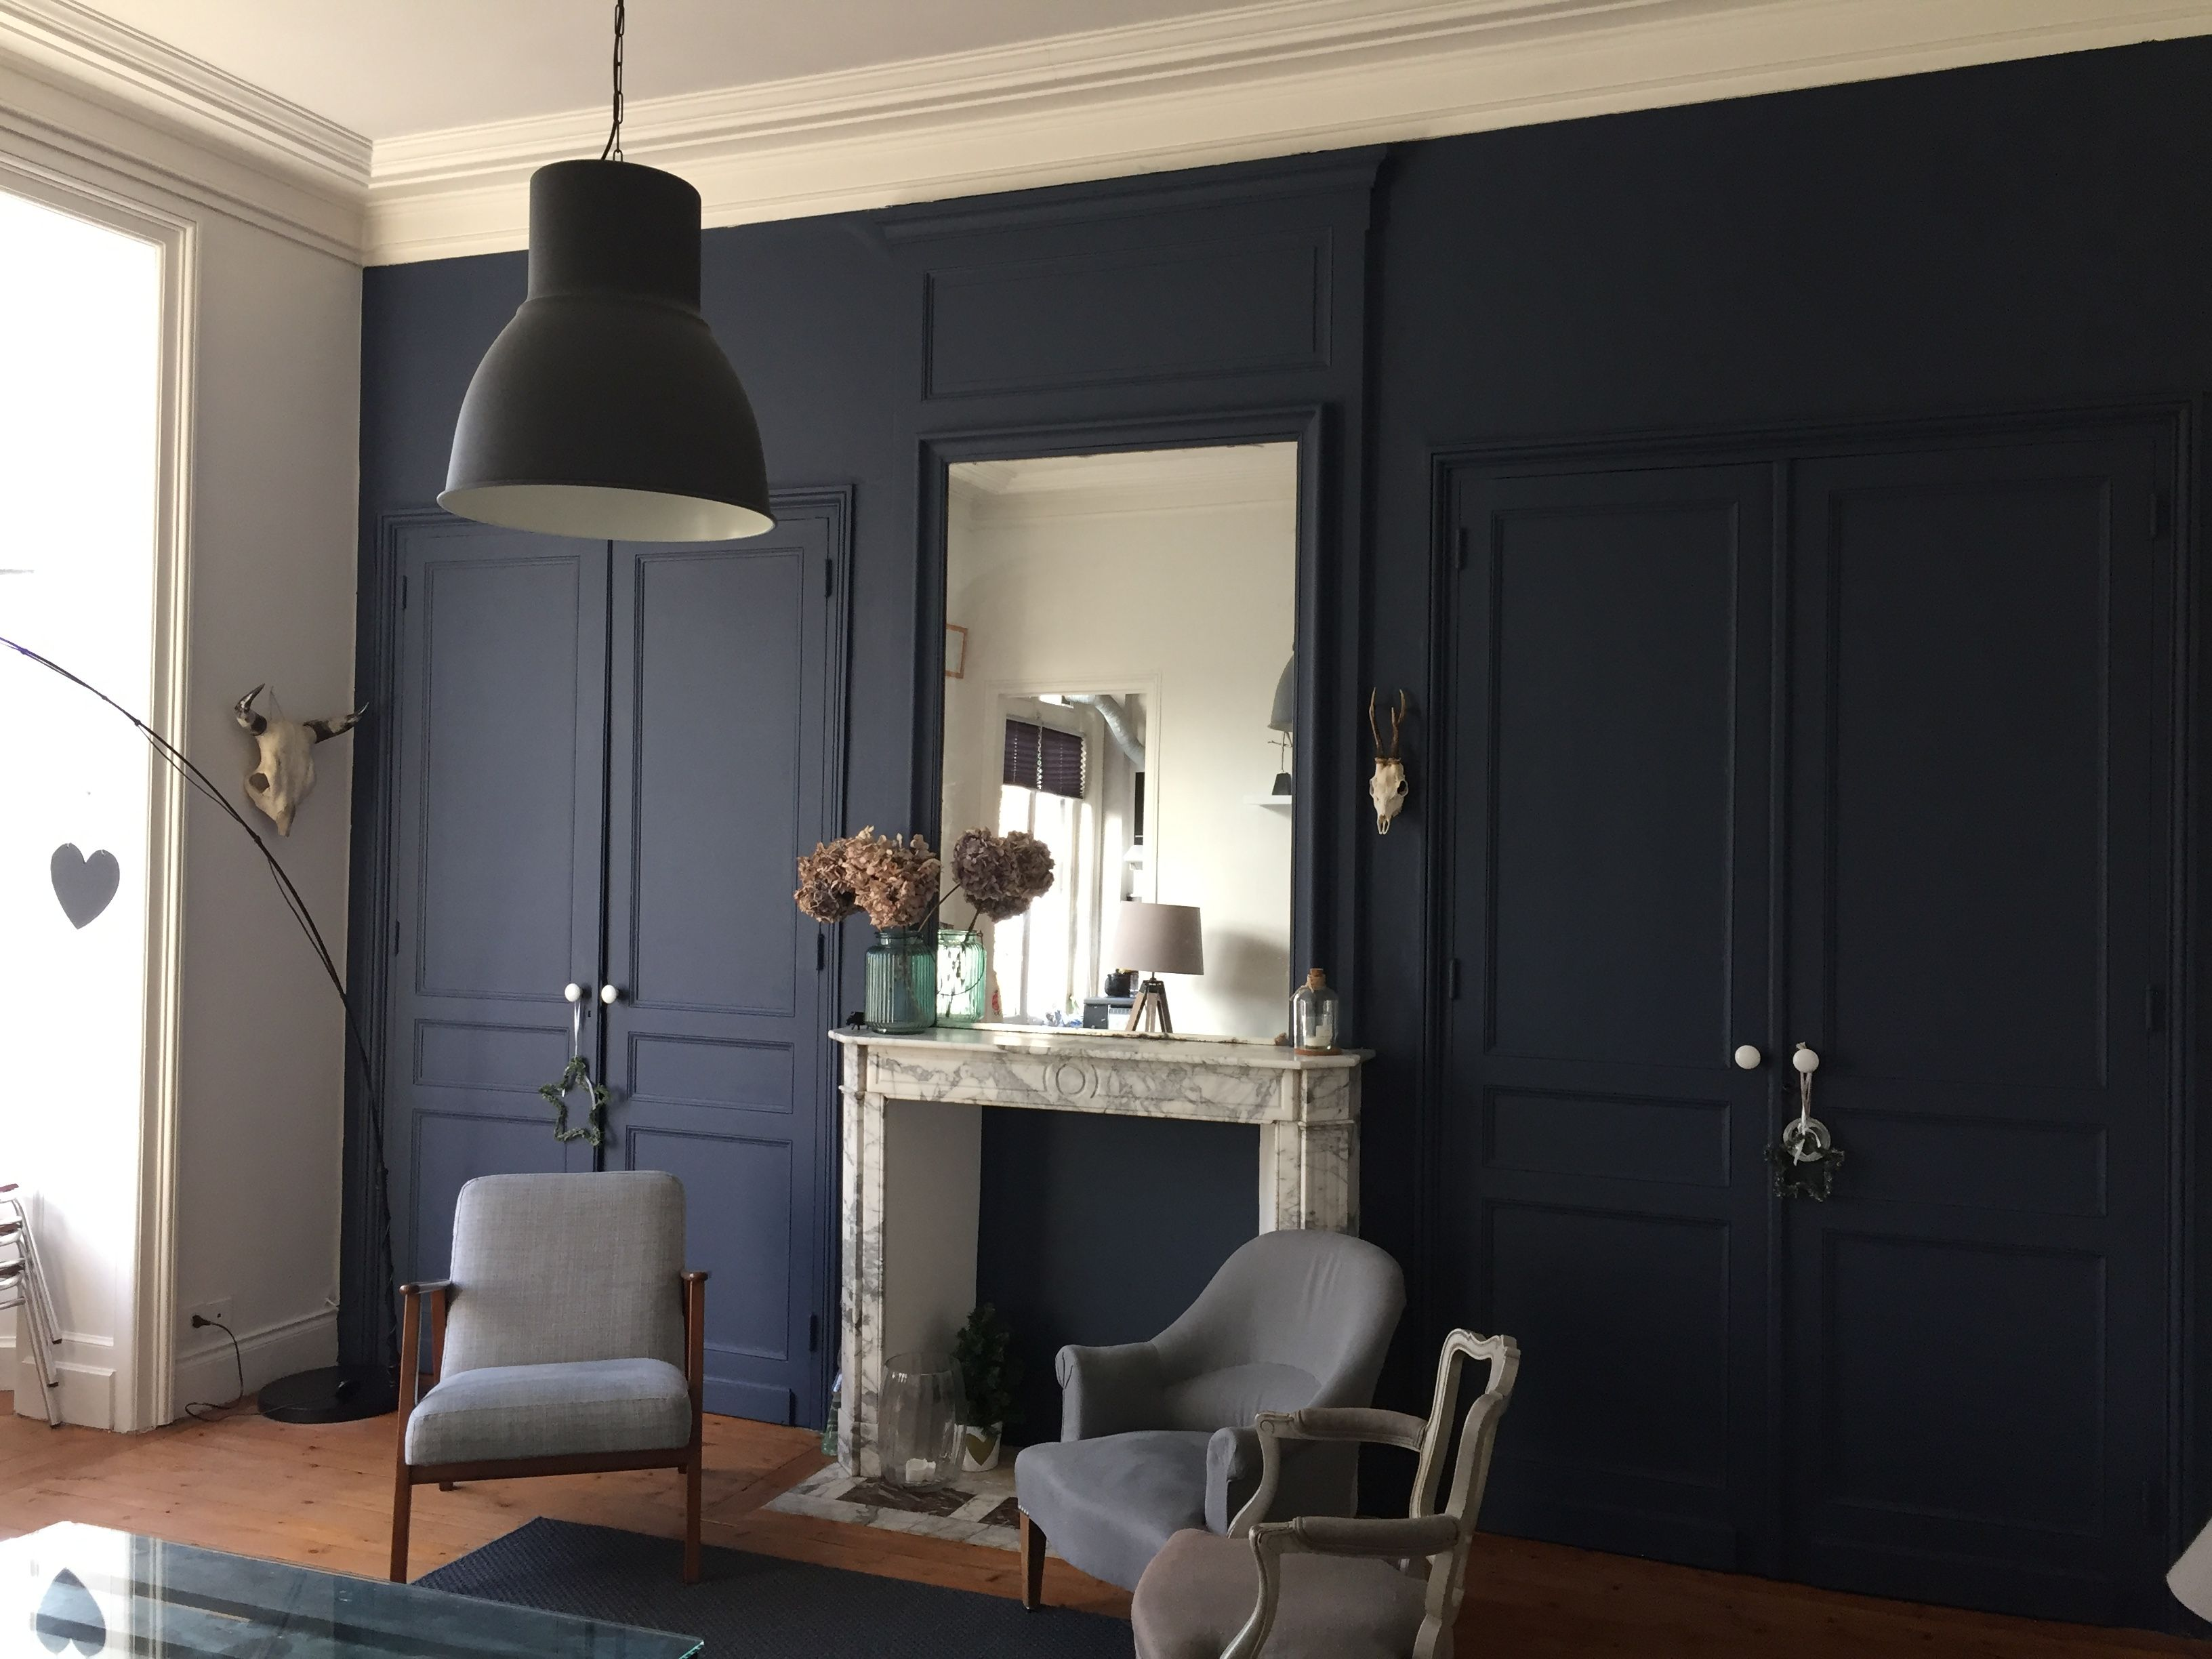 salon appartement haussmannien peintures fonc es bleu marine abysse flamant id es d co appart. Black Bedroom Furniture Sets. Home Design Ideas